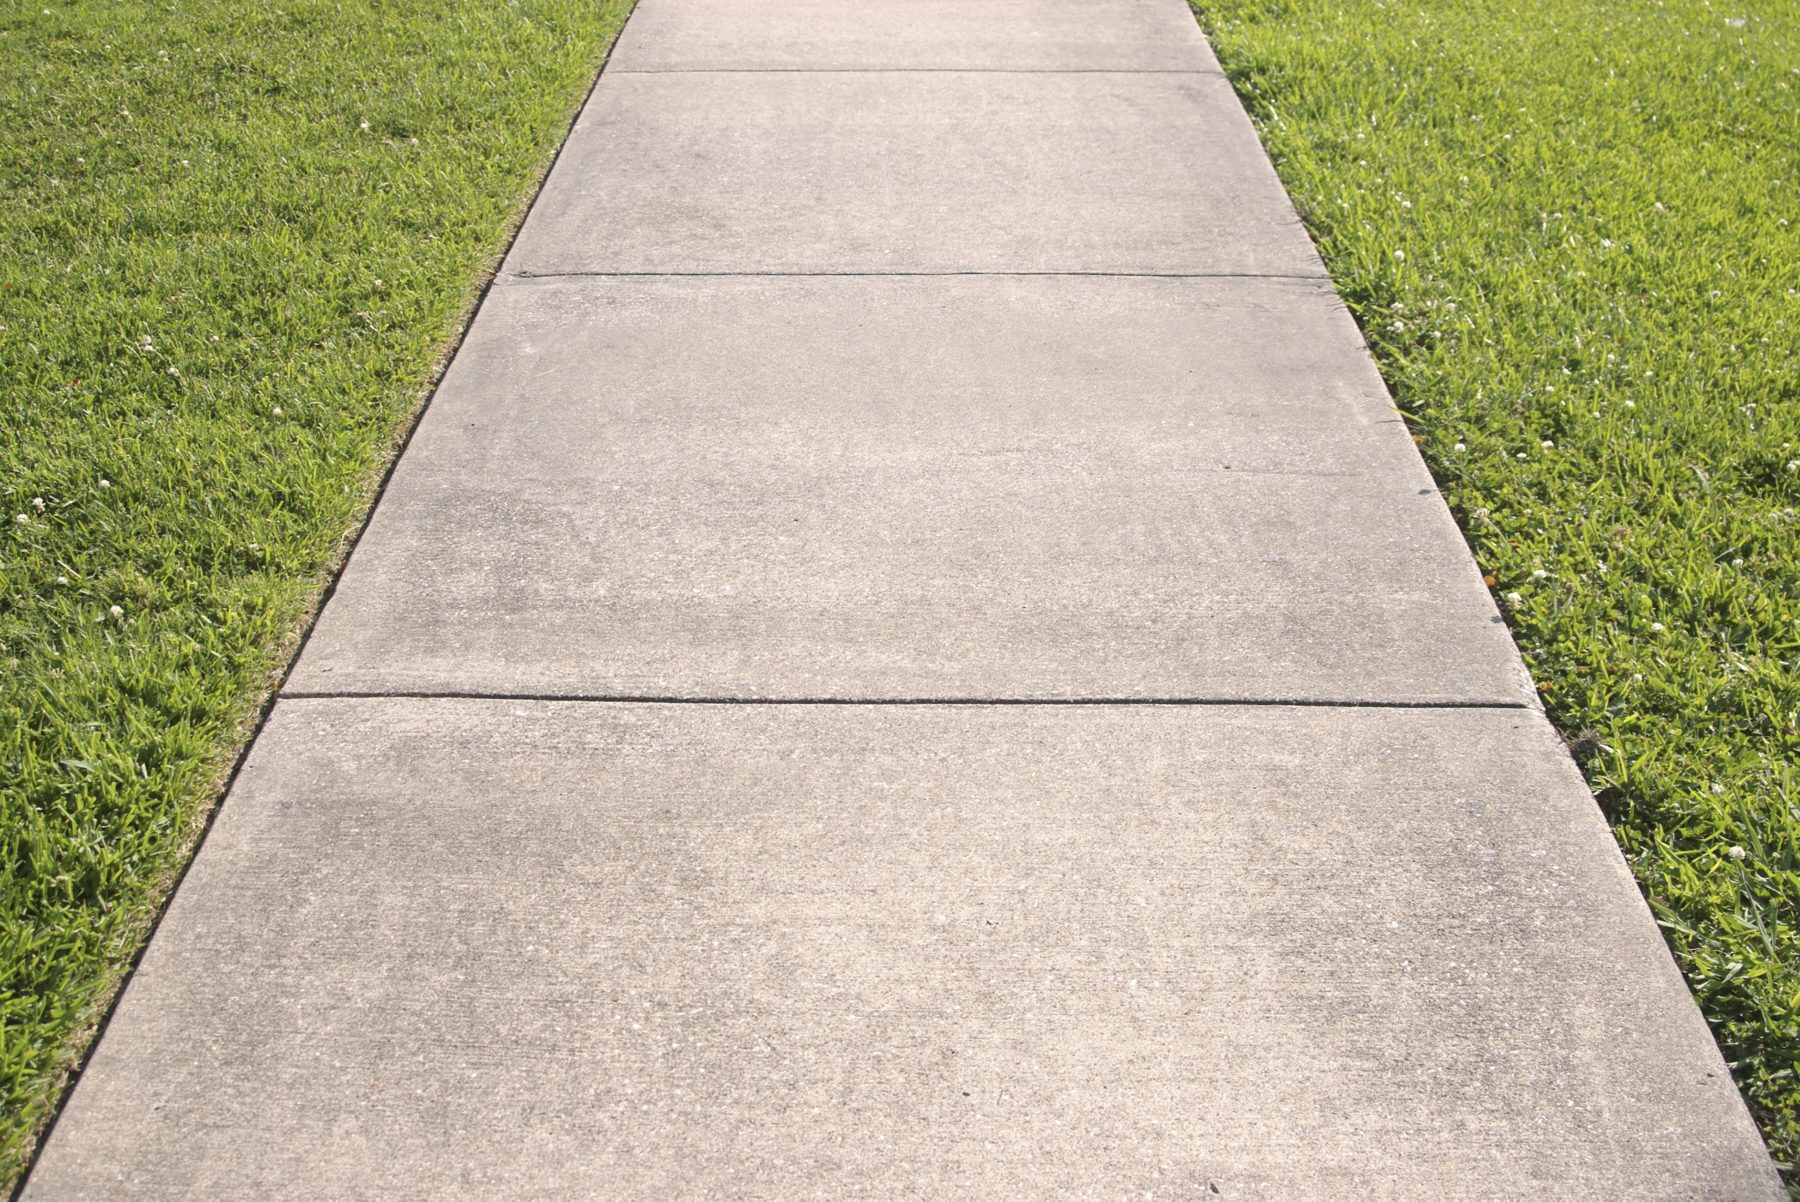 Concrete Sidewalks And Walkways A1 Concrete Leveling